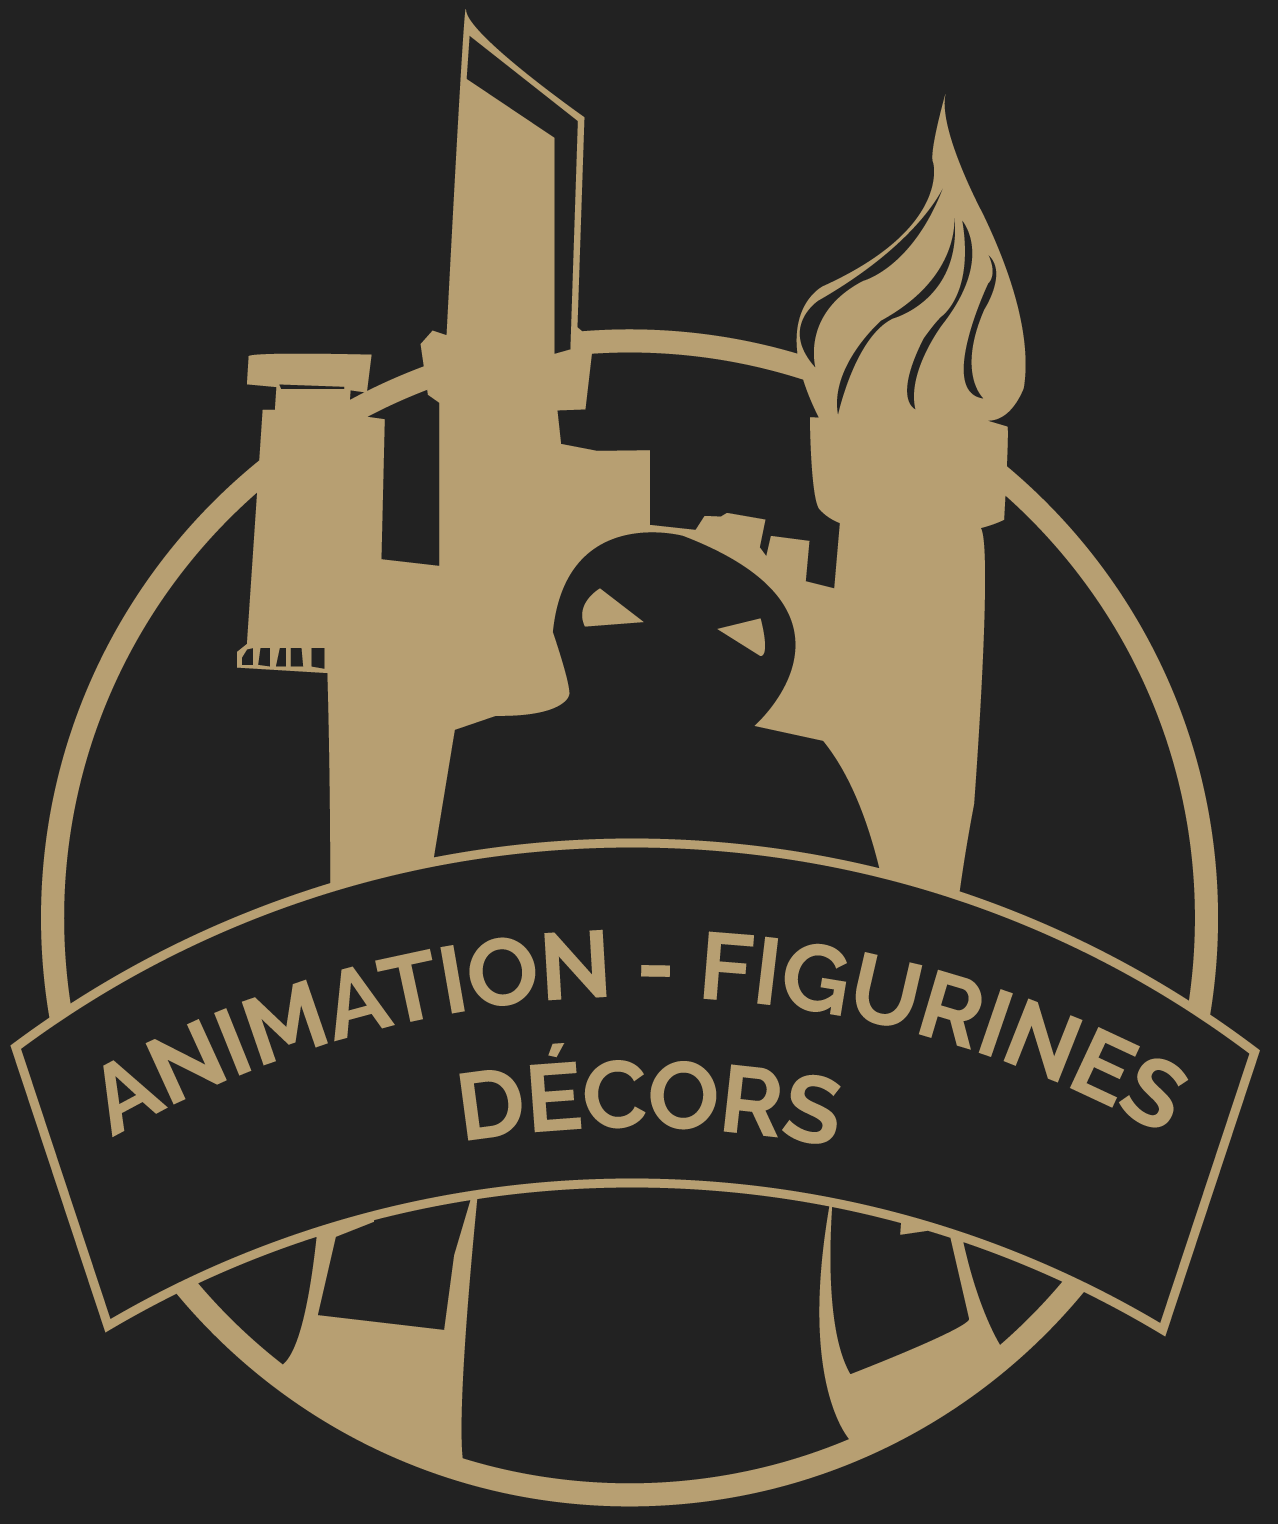 Animation_Figurines_Decors_logo1B_lettres_Or